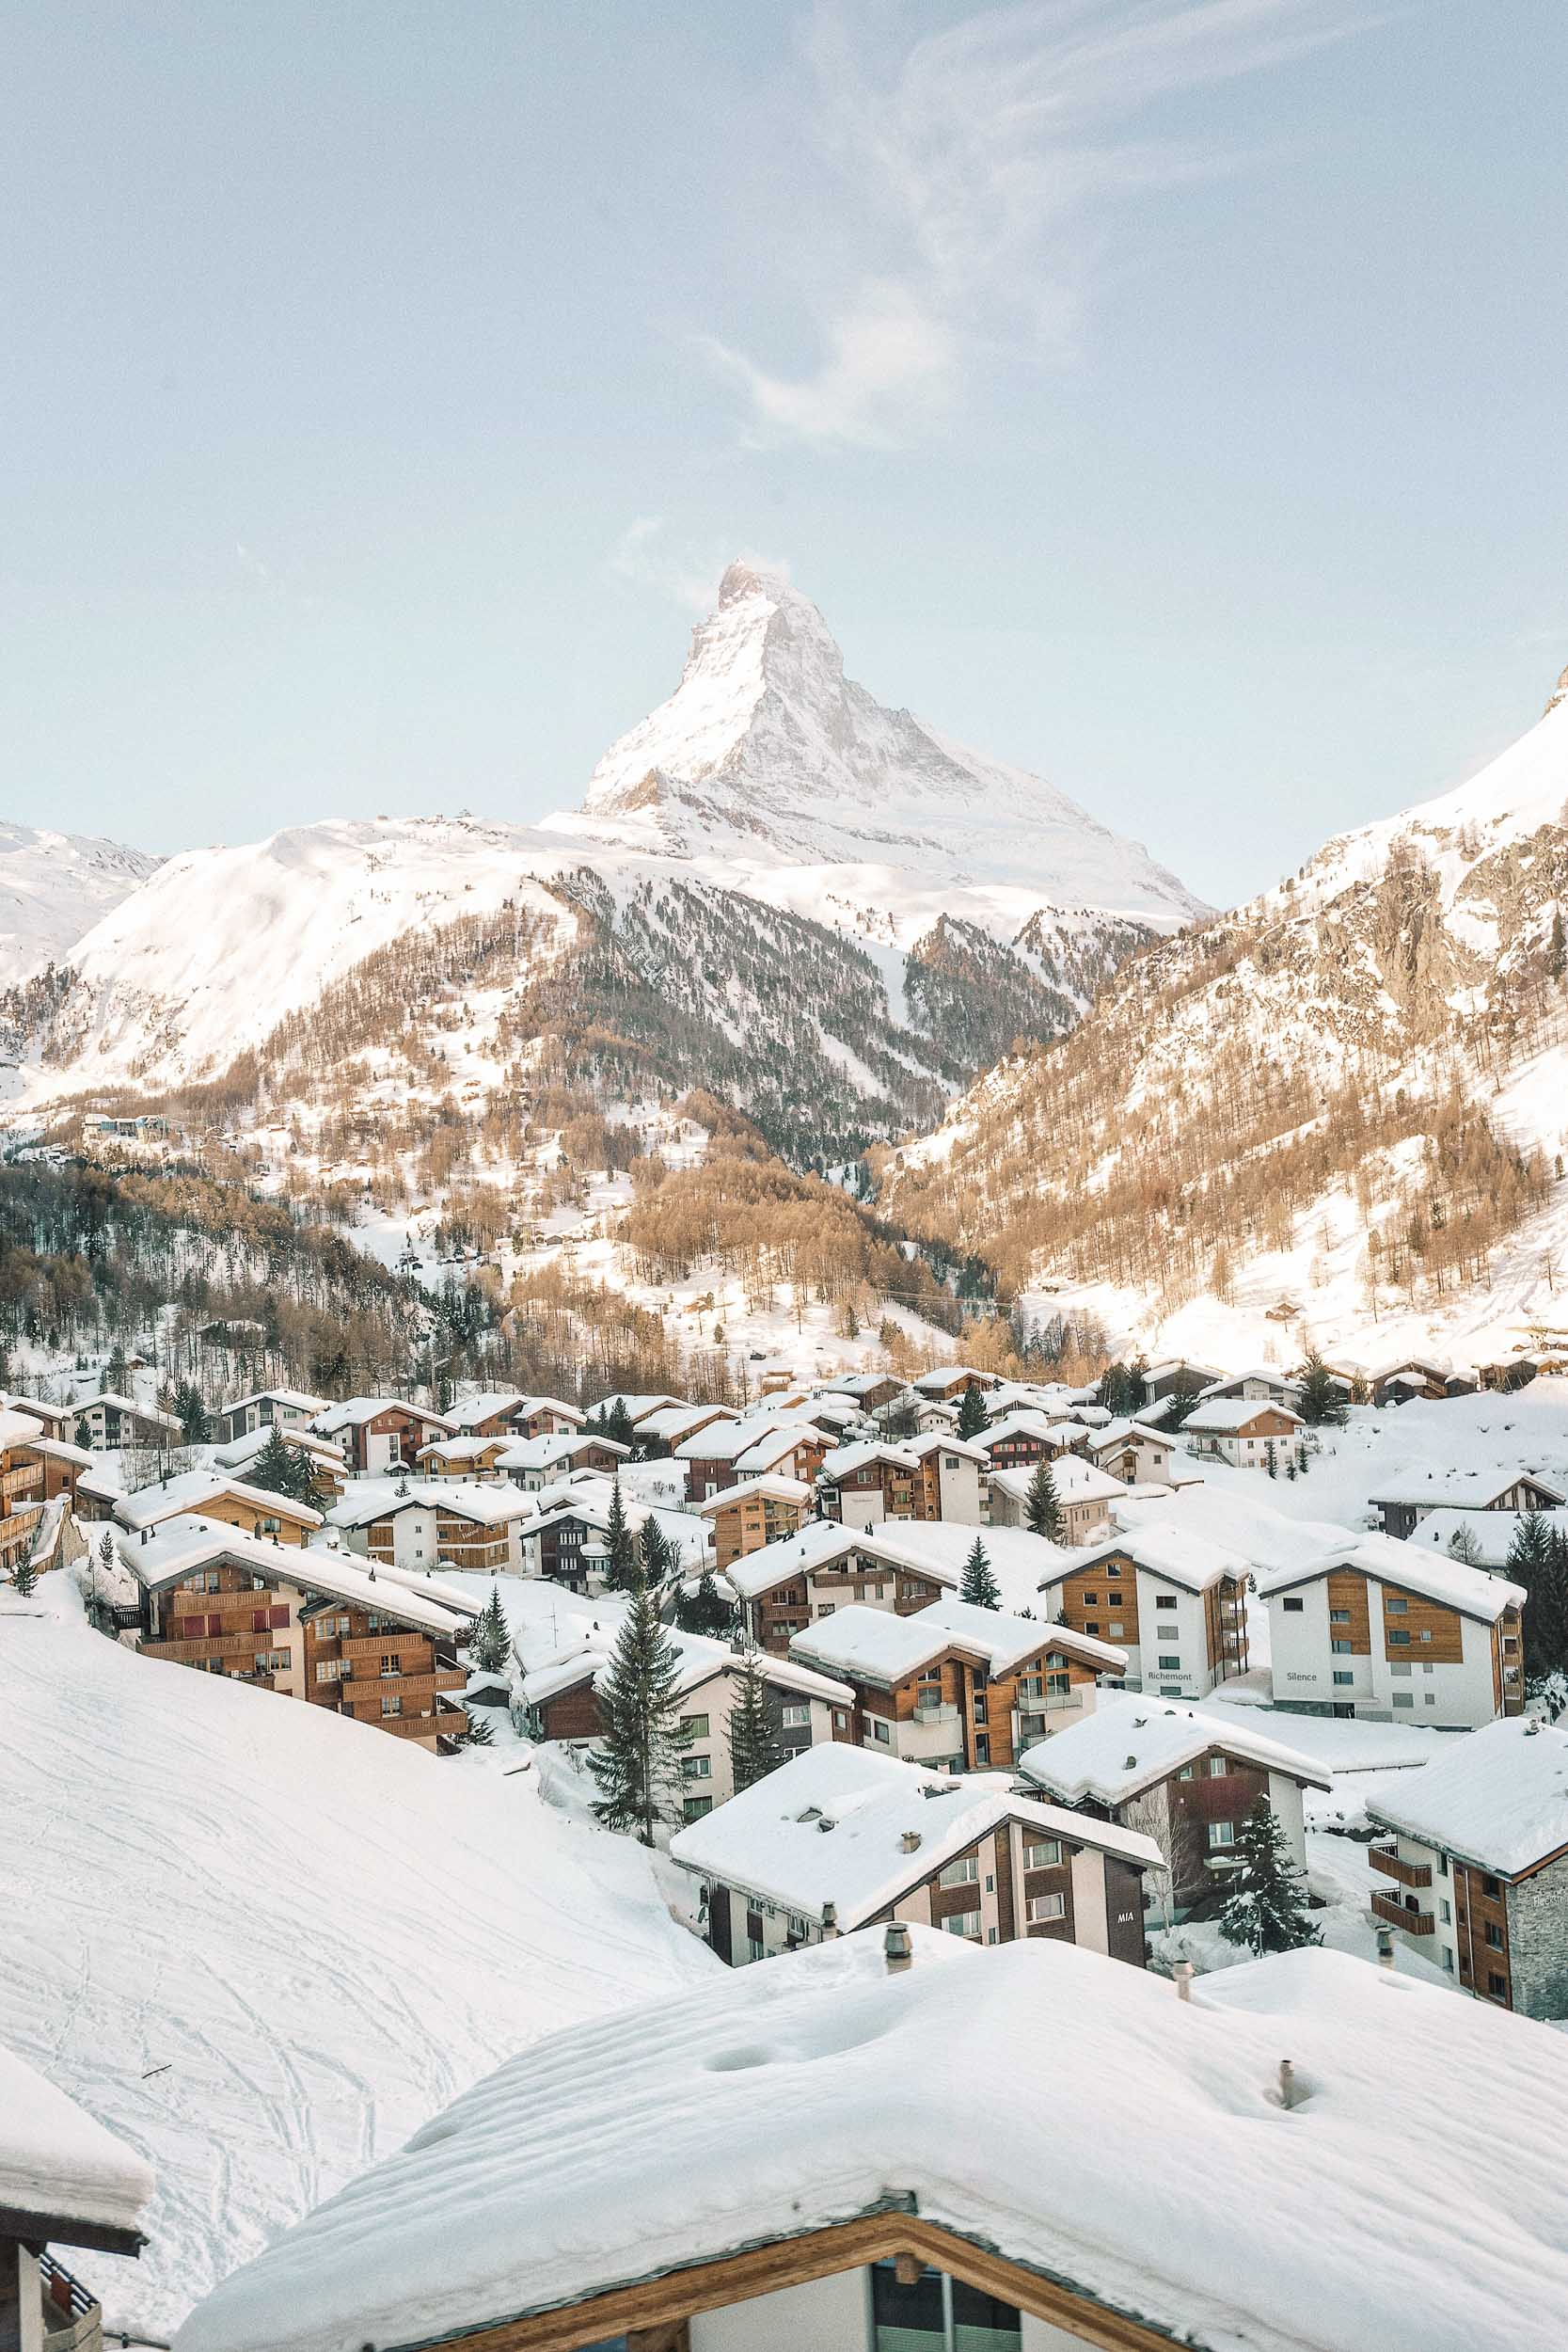 The entire village of Zermatt is car free, making it great for walking around and shopping at the many boutiques.